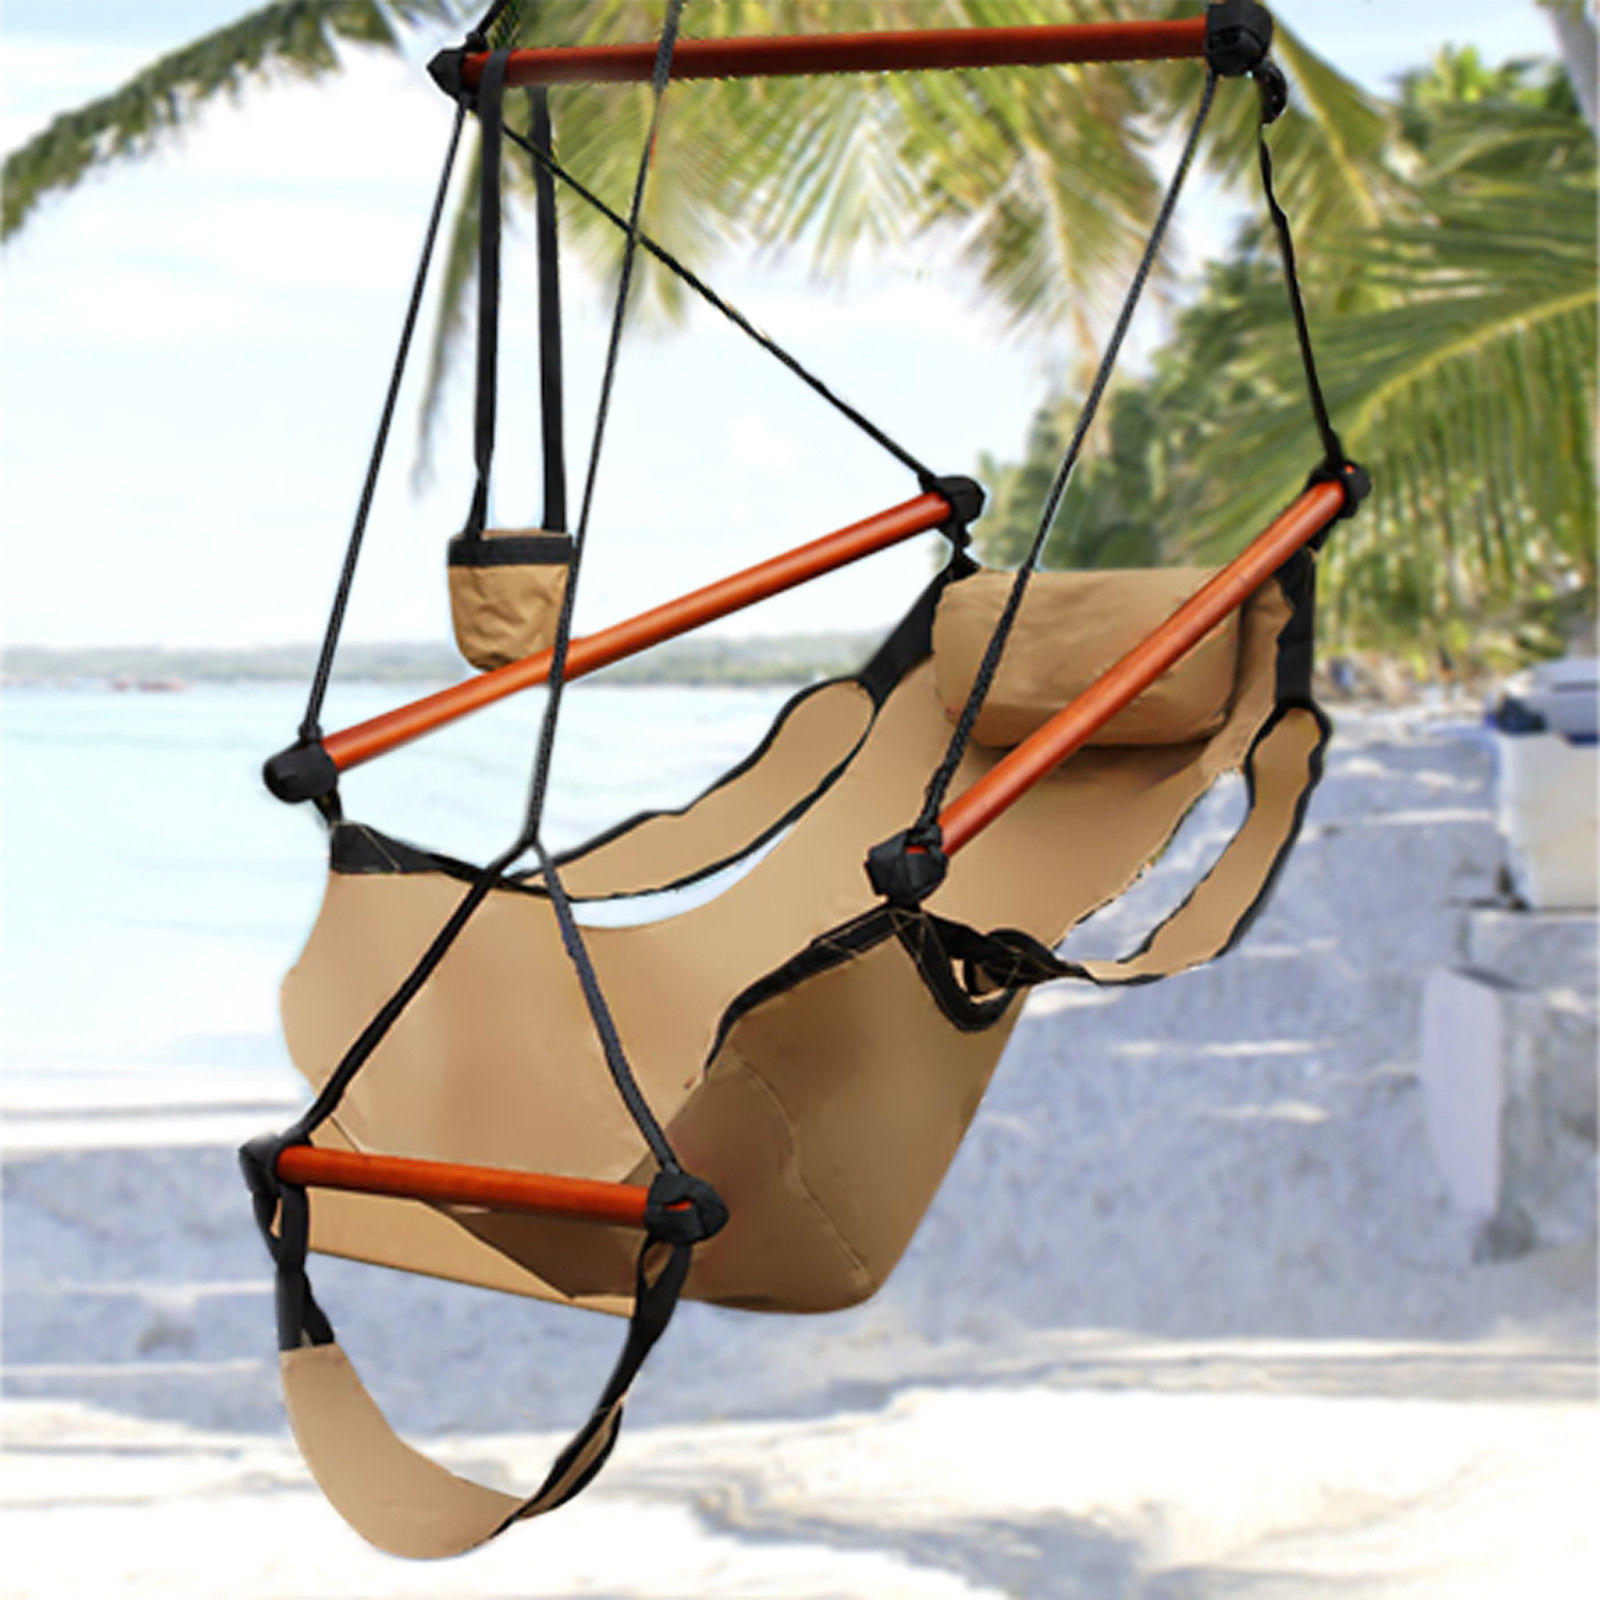 $27.99 Hammock Hanging Chair Air Deluxe Sky Swing Outdoor Chair Solid Wood 250lb